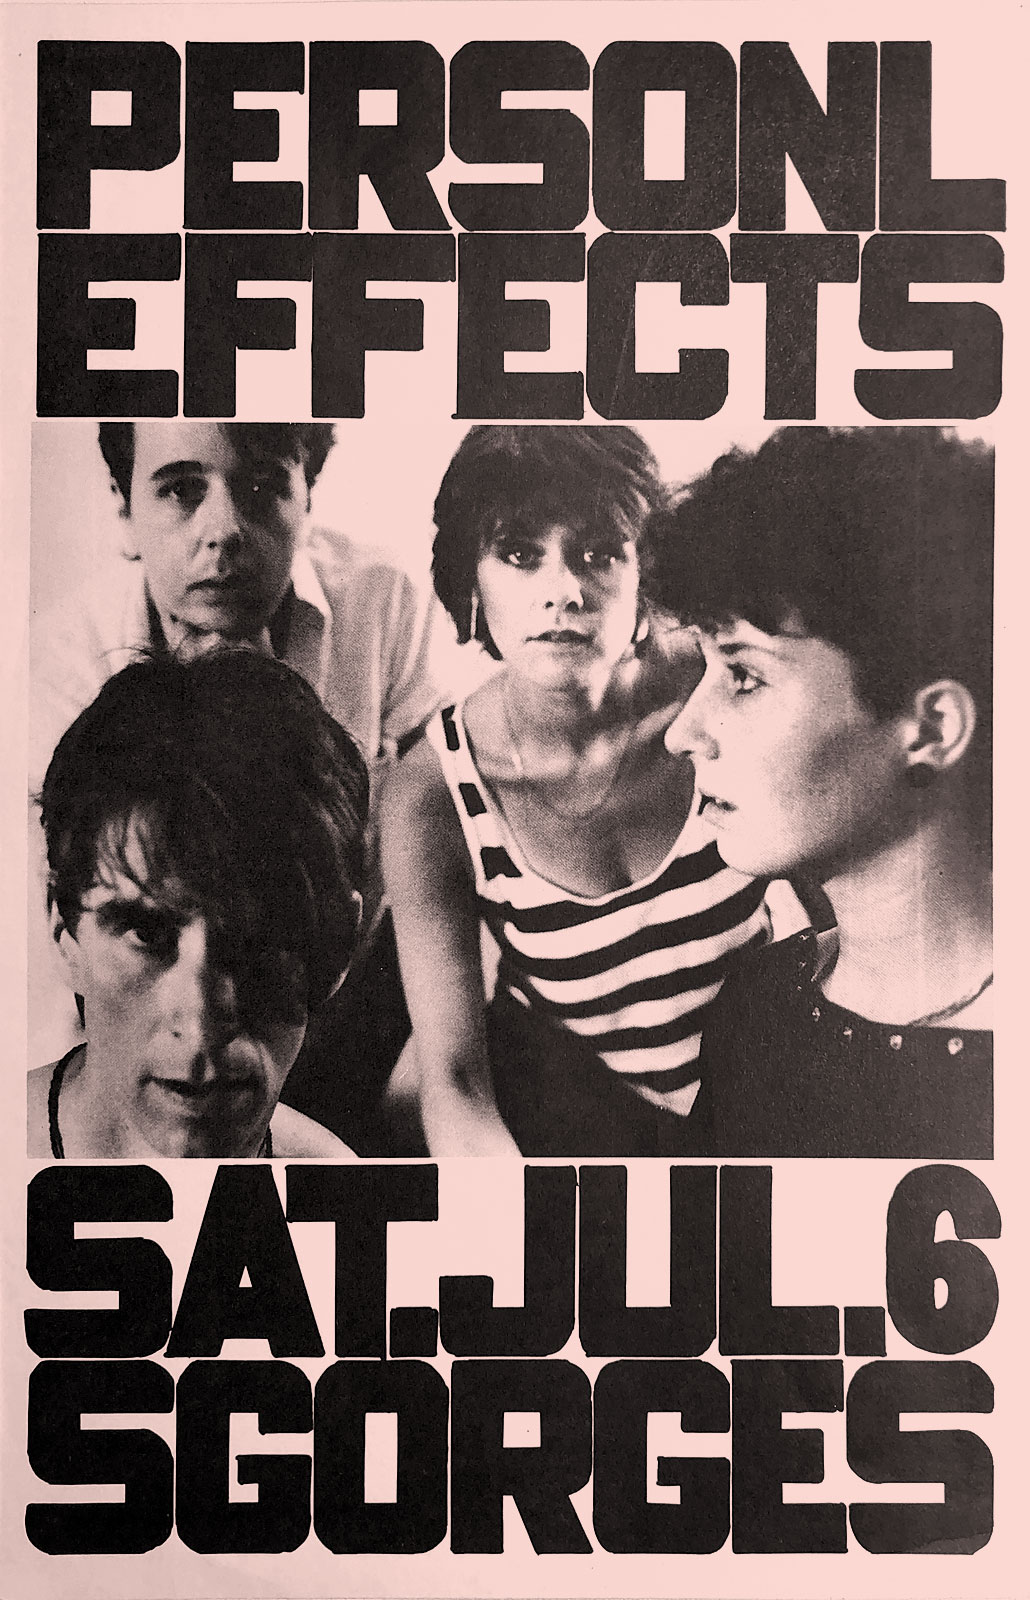 Poster for Personal Effects at Scorgies in Rochester, New York on 07.06.1985